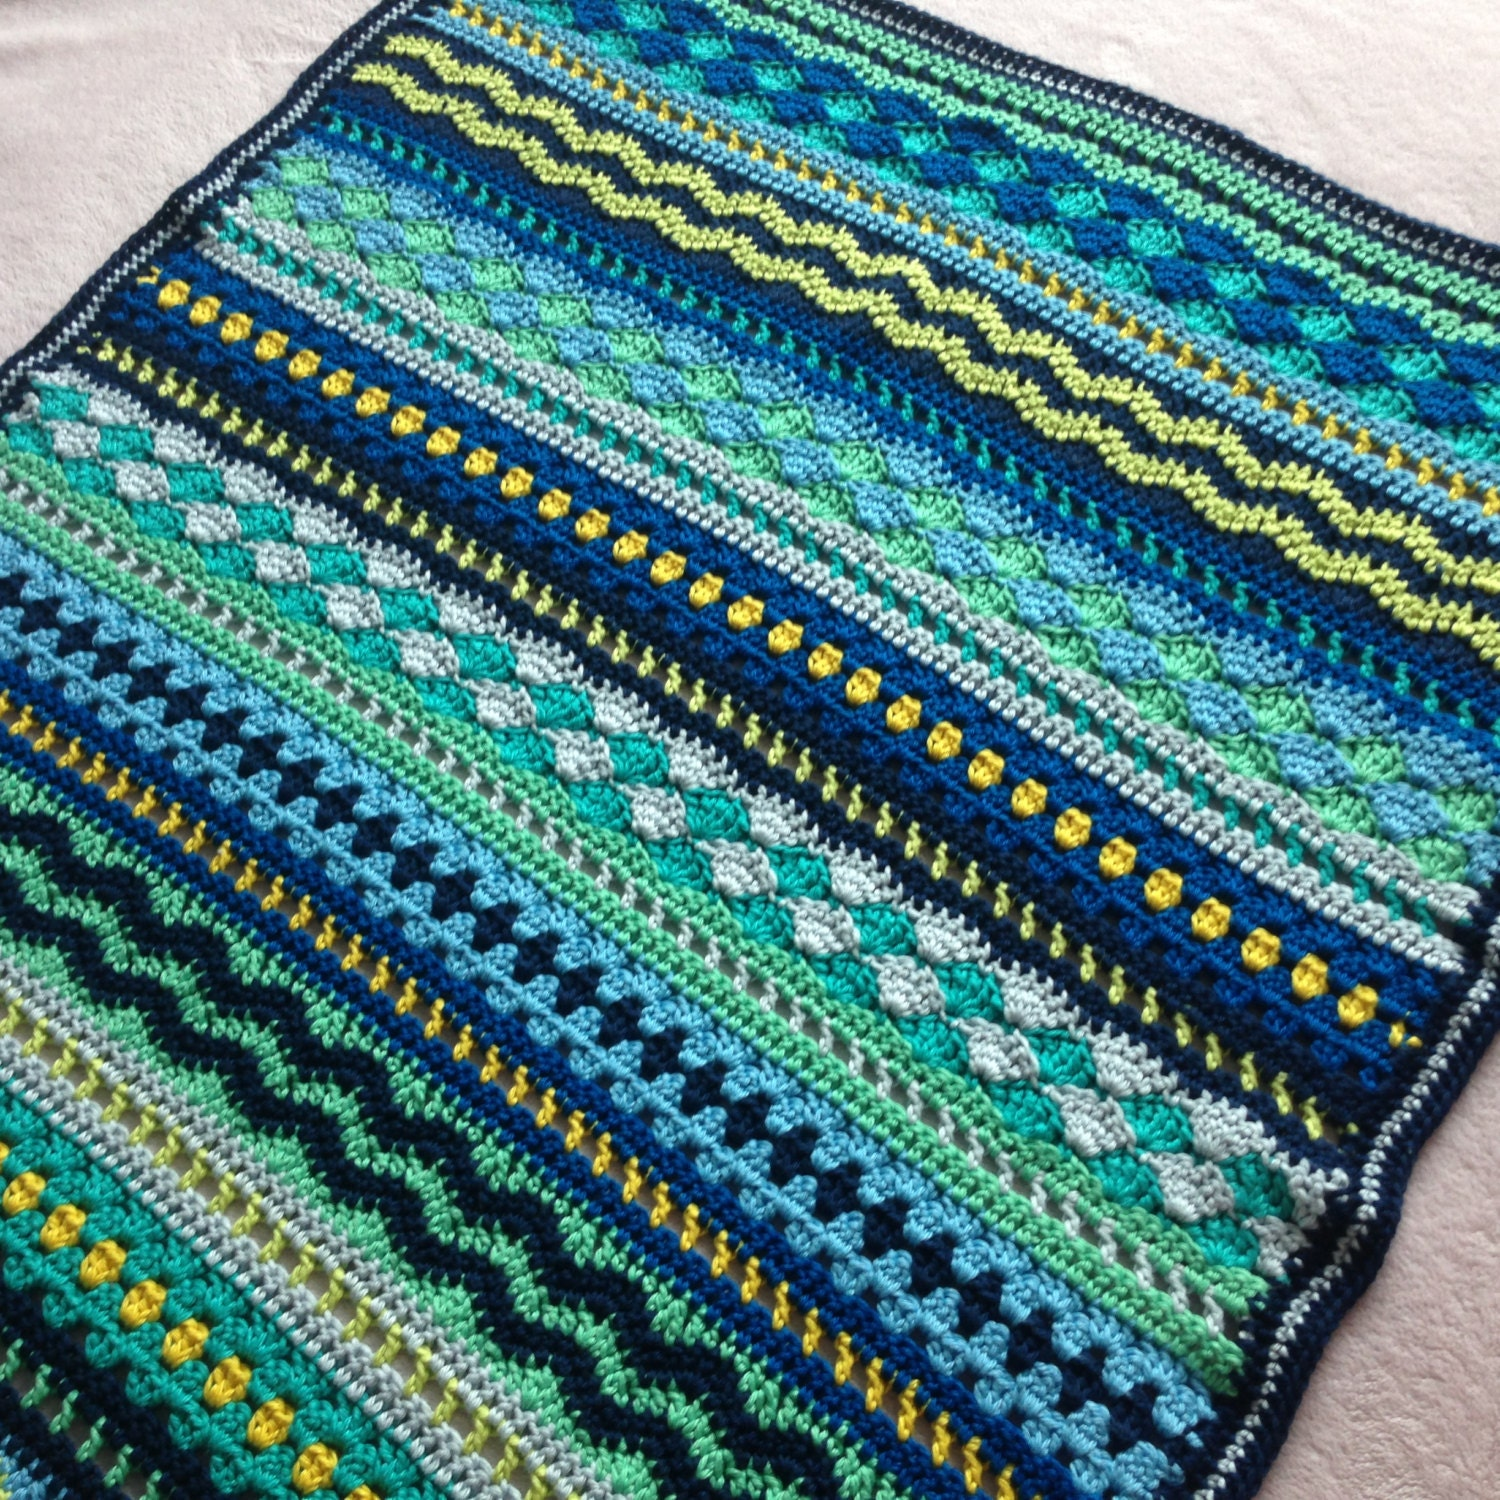 Crochet baby blanket pattern tutorial baby blues blanket zoom bankloansurffo Image collections